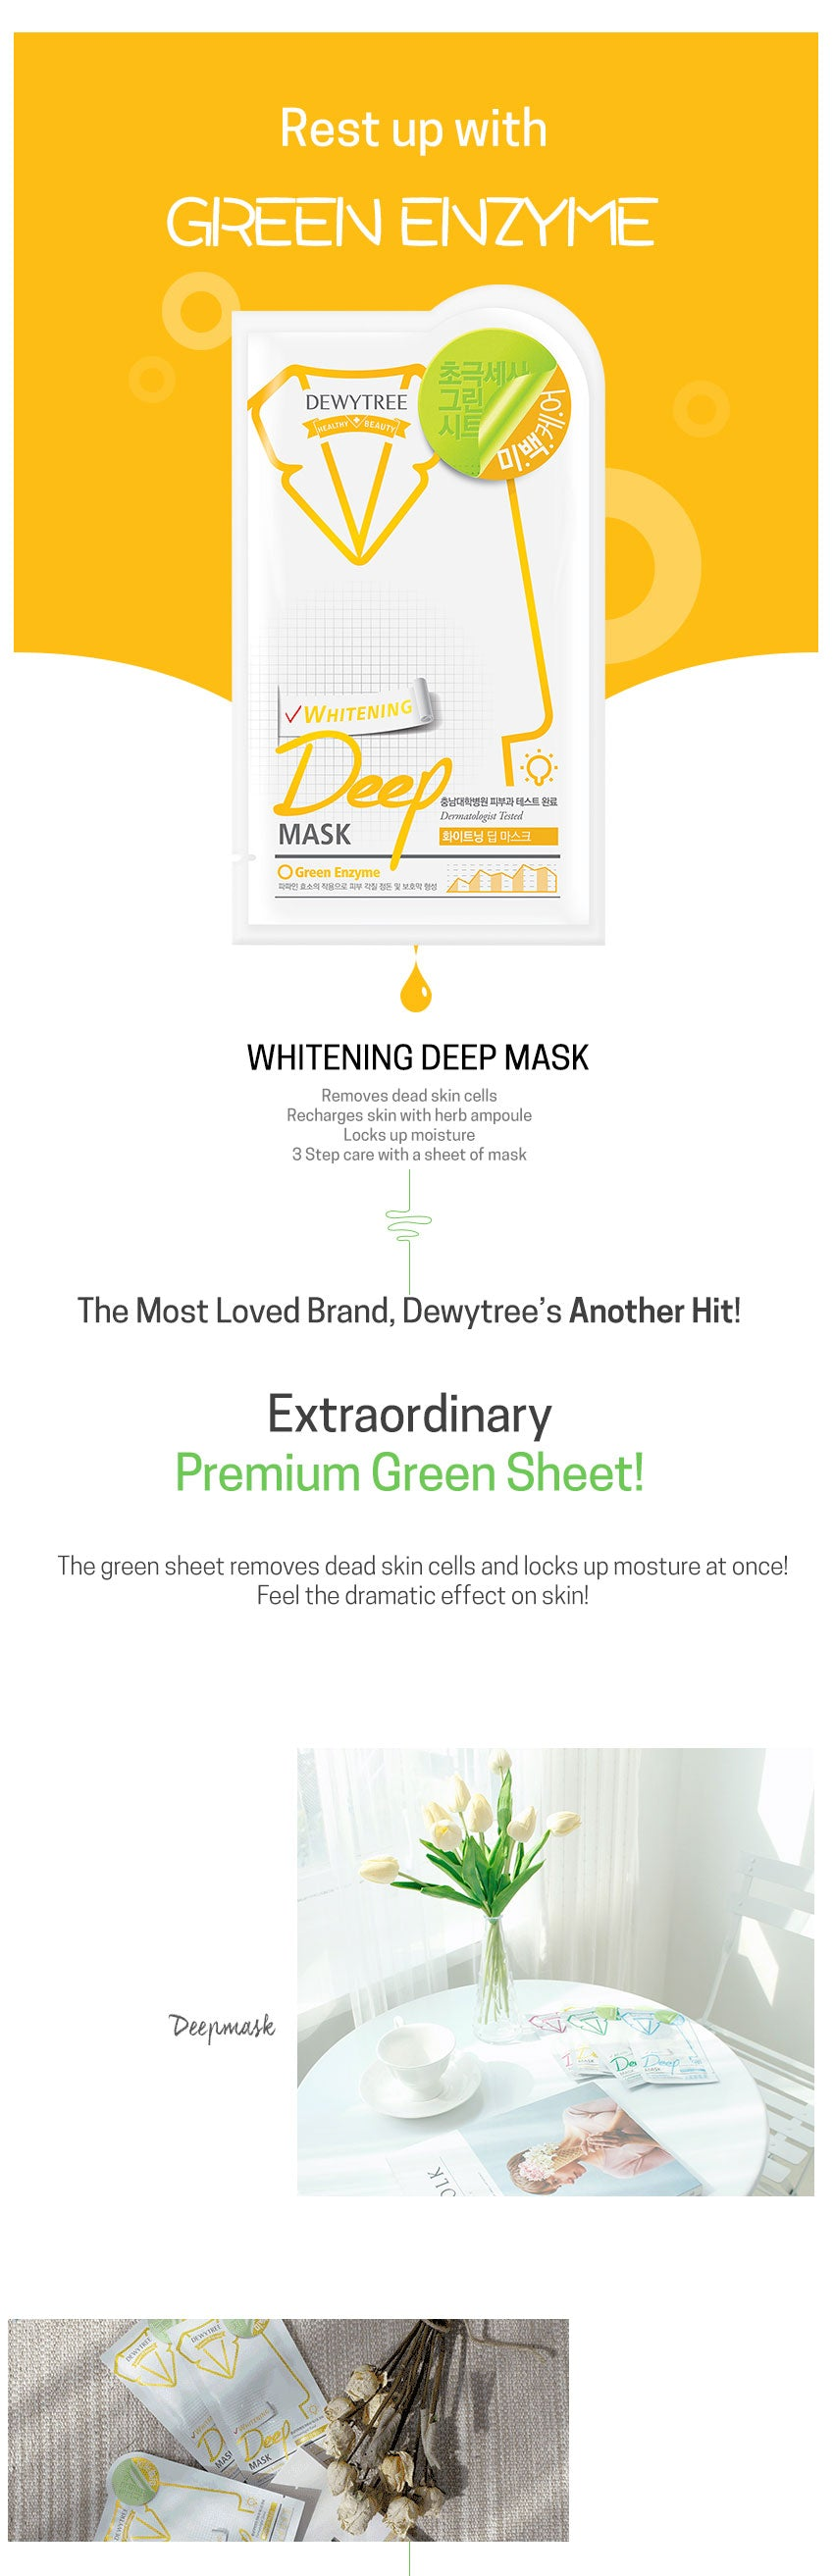 Whitening-Deep-Mask-1